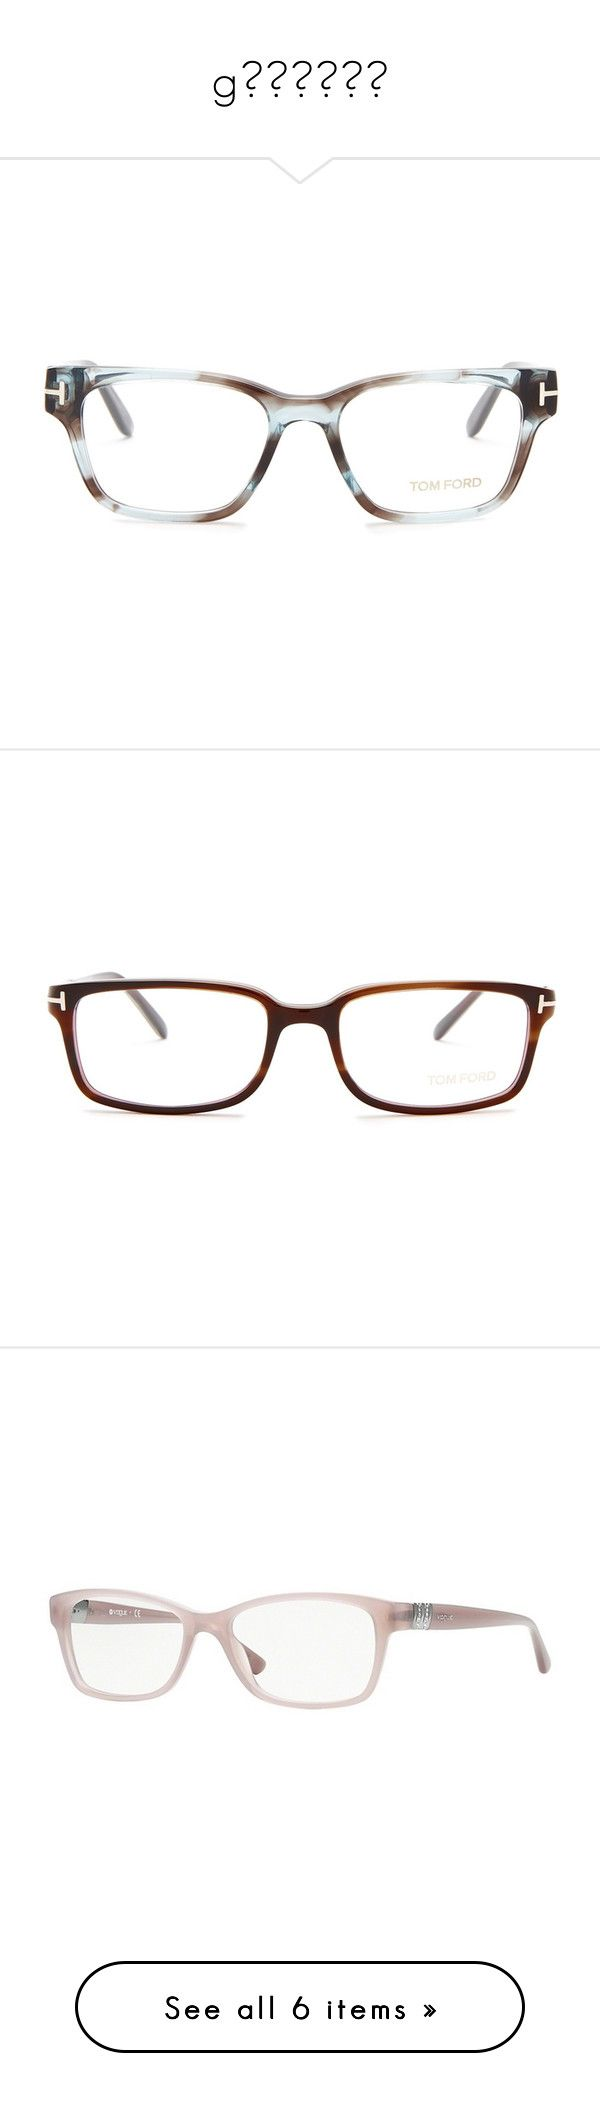 """gℓαѕѕєѕ"" by booknerd1326 ❤ liked on Polyvore featuring accessories, eyewear, eyeglasses, greysm, plastic eyeglasses, plastic lens glasses, transparent eyeglasses, tom ford eyeglasses, square eyeglasses and brnwht"